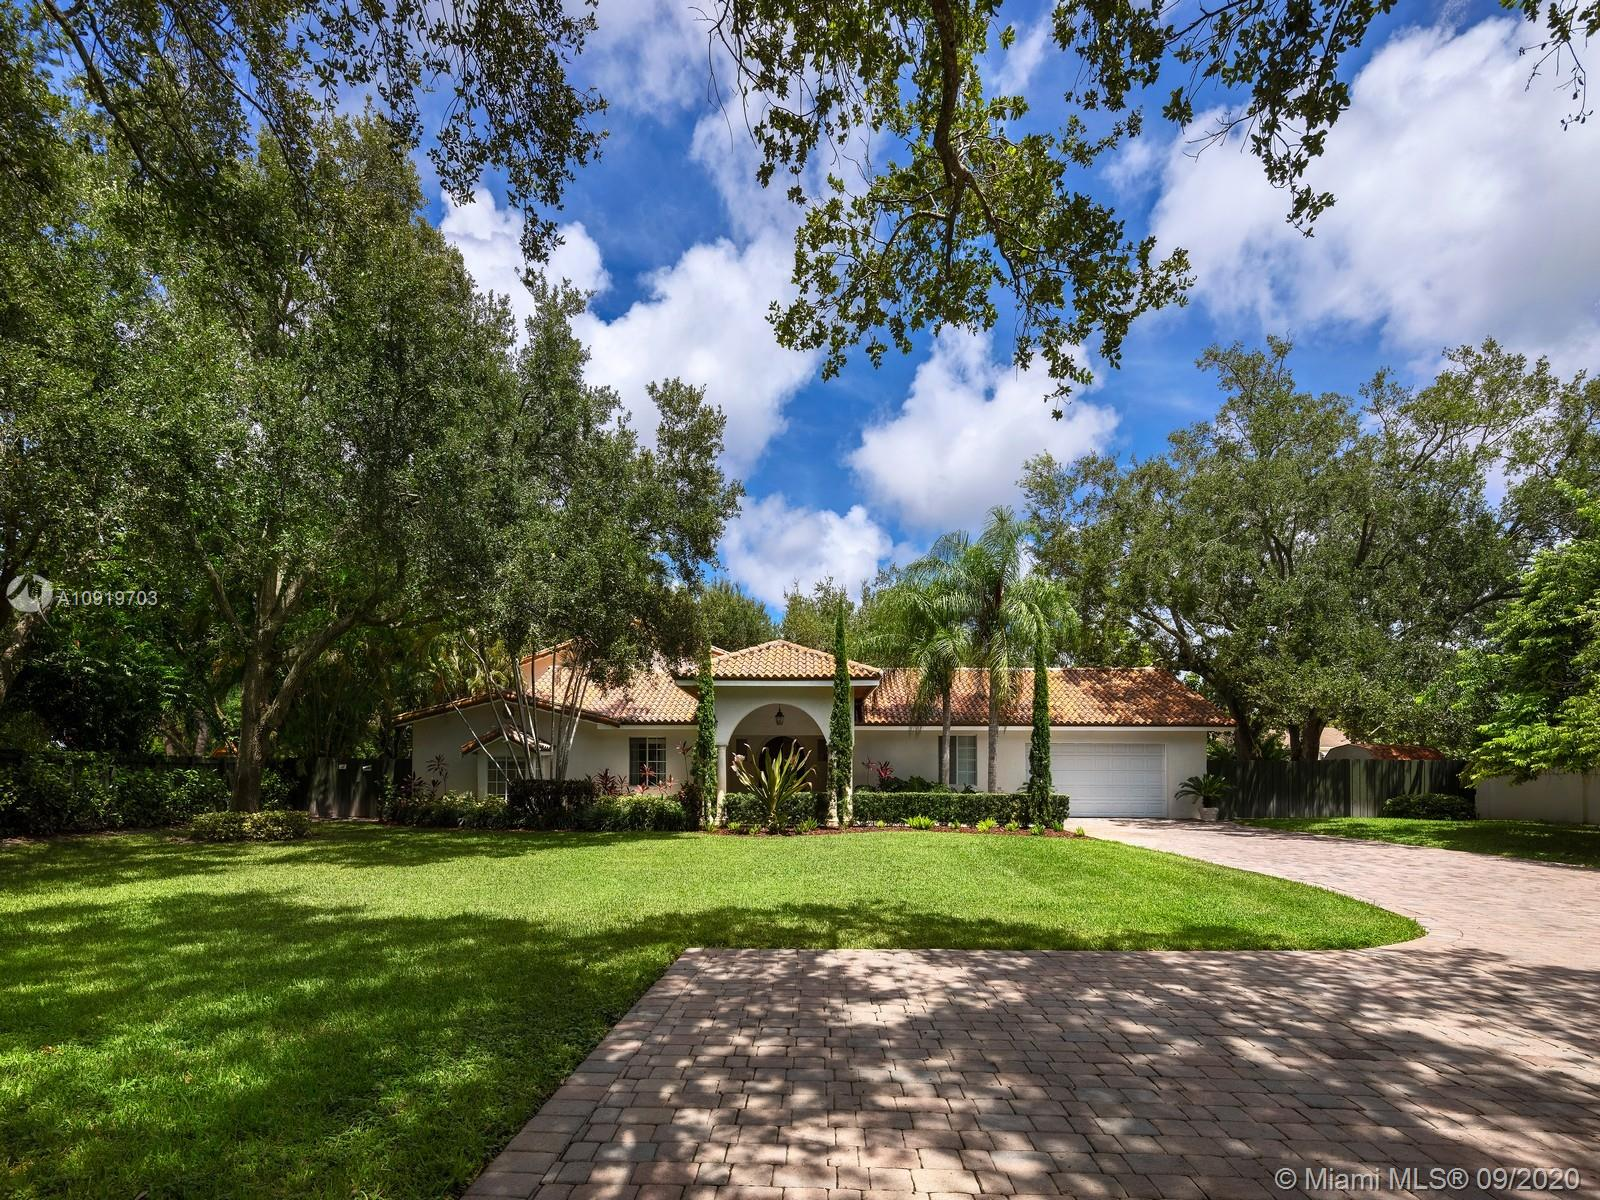 Details for 8445 96th St, Miami, FL 33156